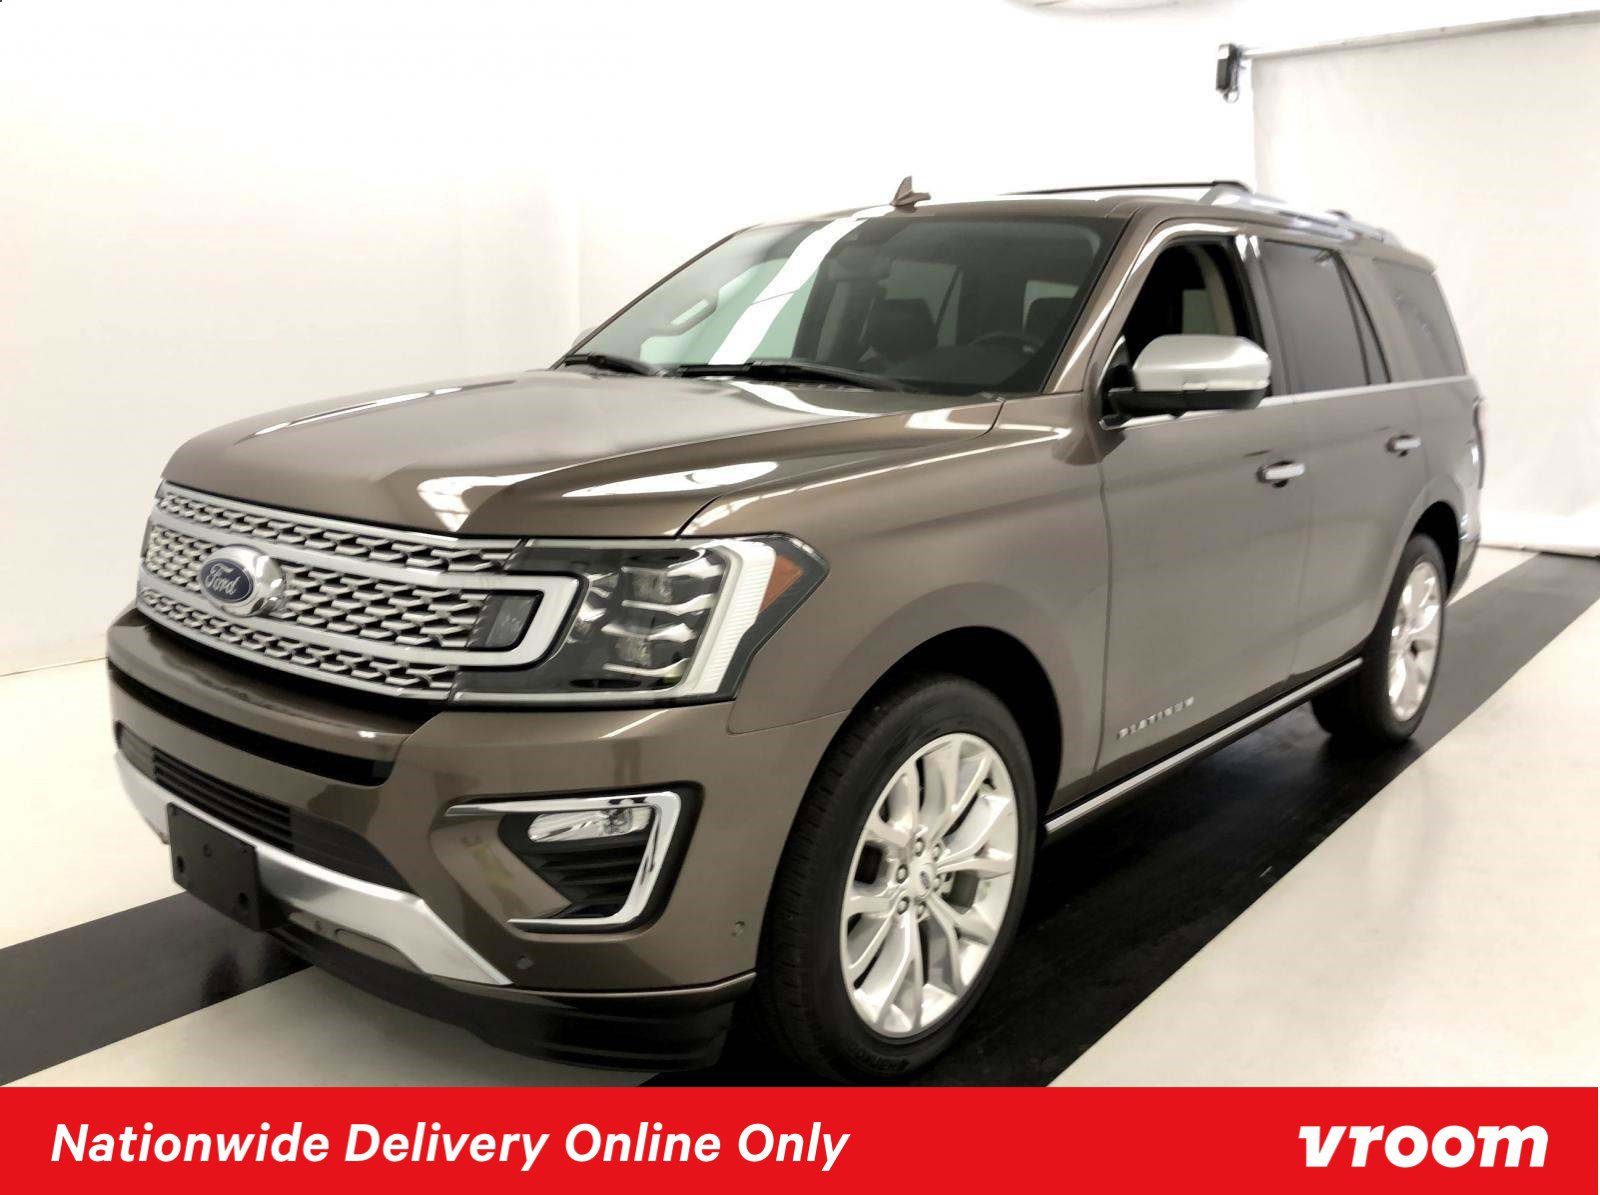 2018 Ford Expedition 2WD Platinum image